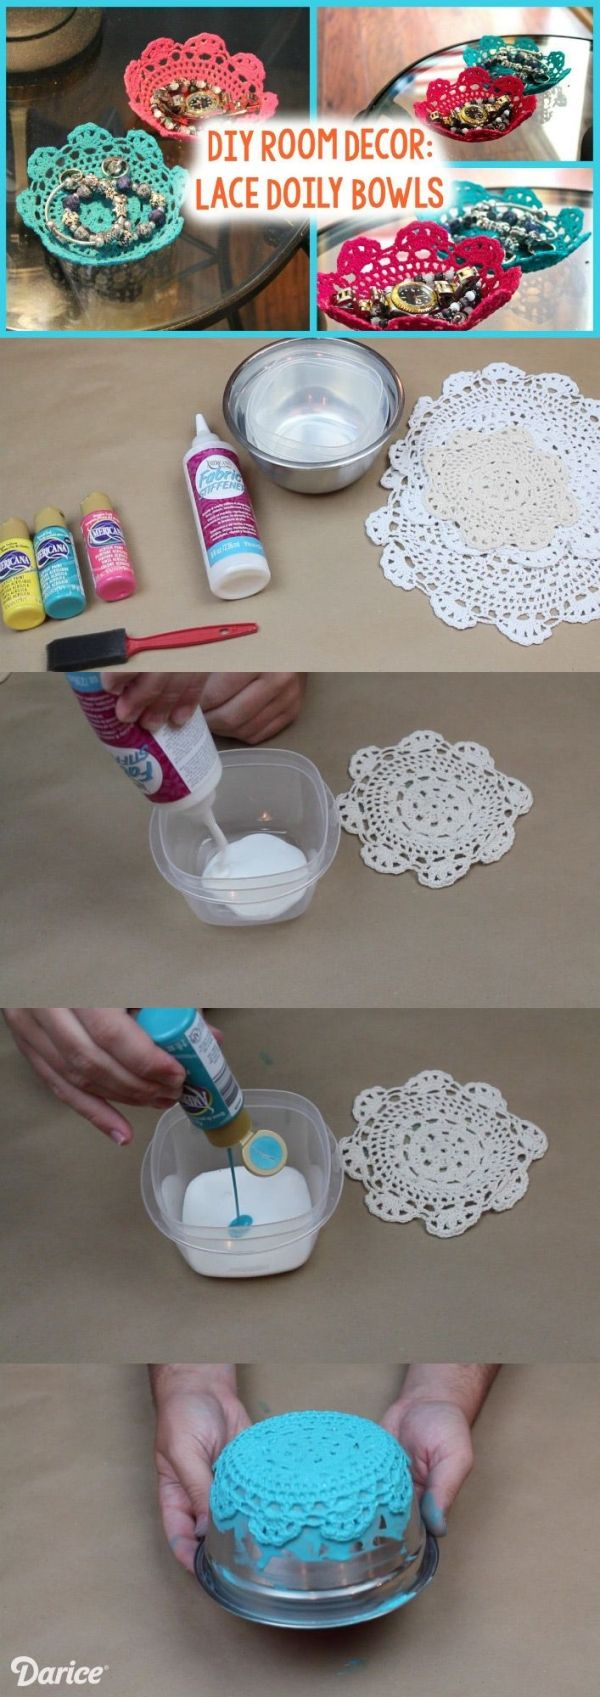 Colorful DIY Lace Doily Bowl Tutorial by delores